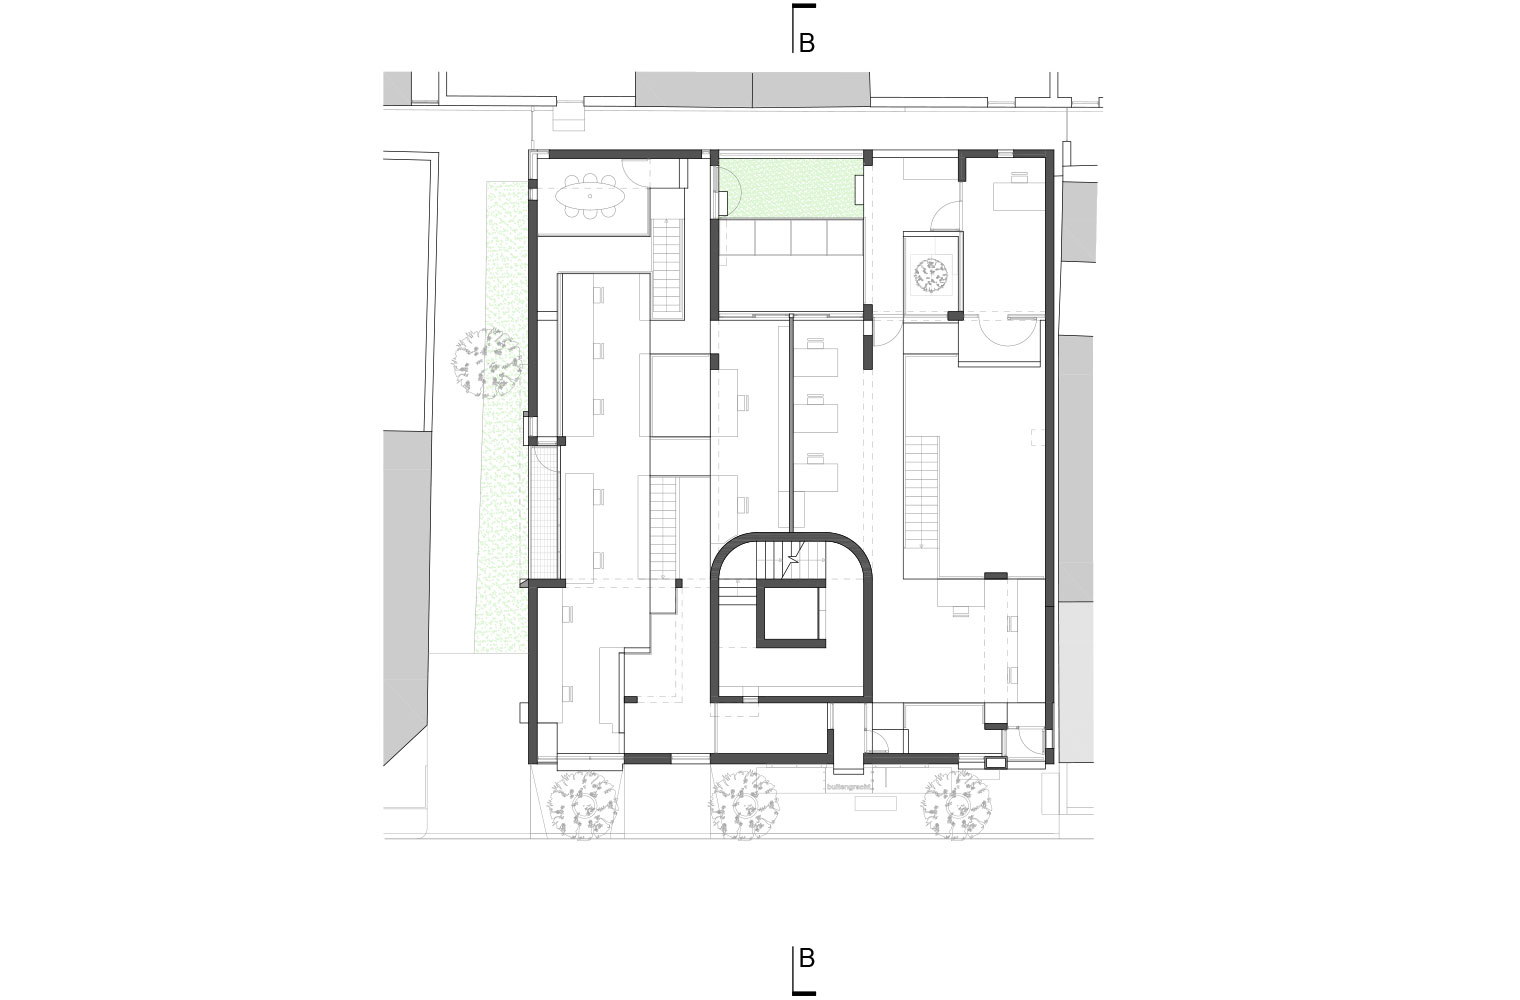 236-Buitengracht-Second Floor Plan